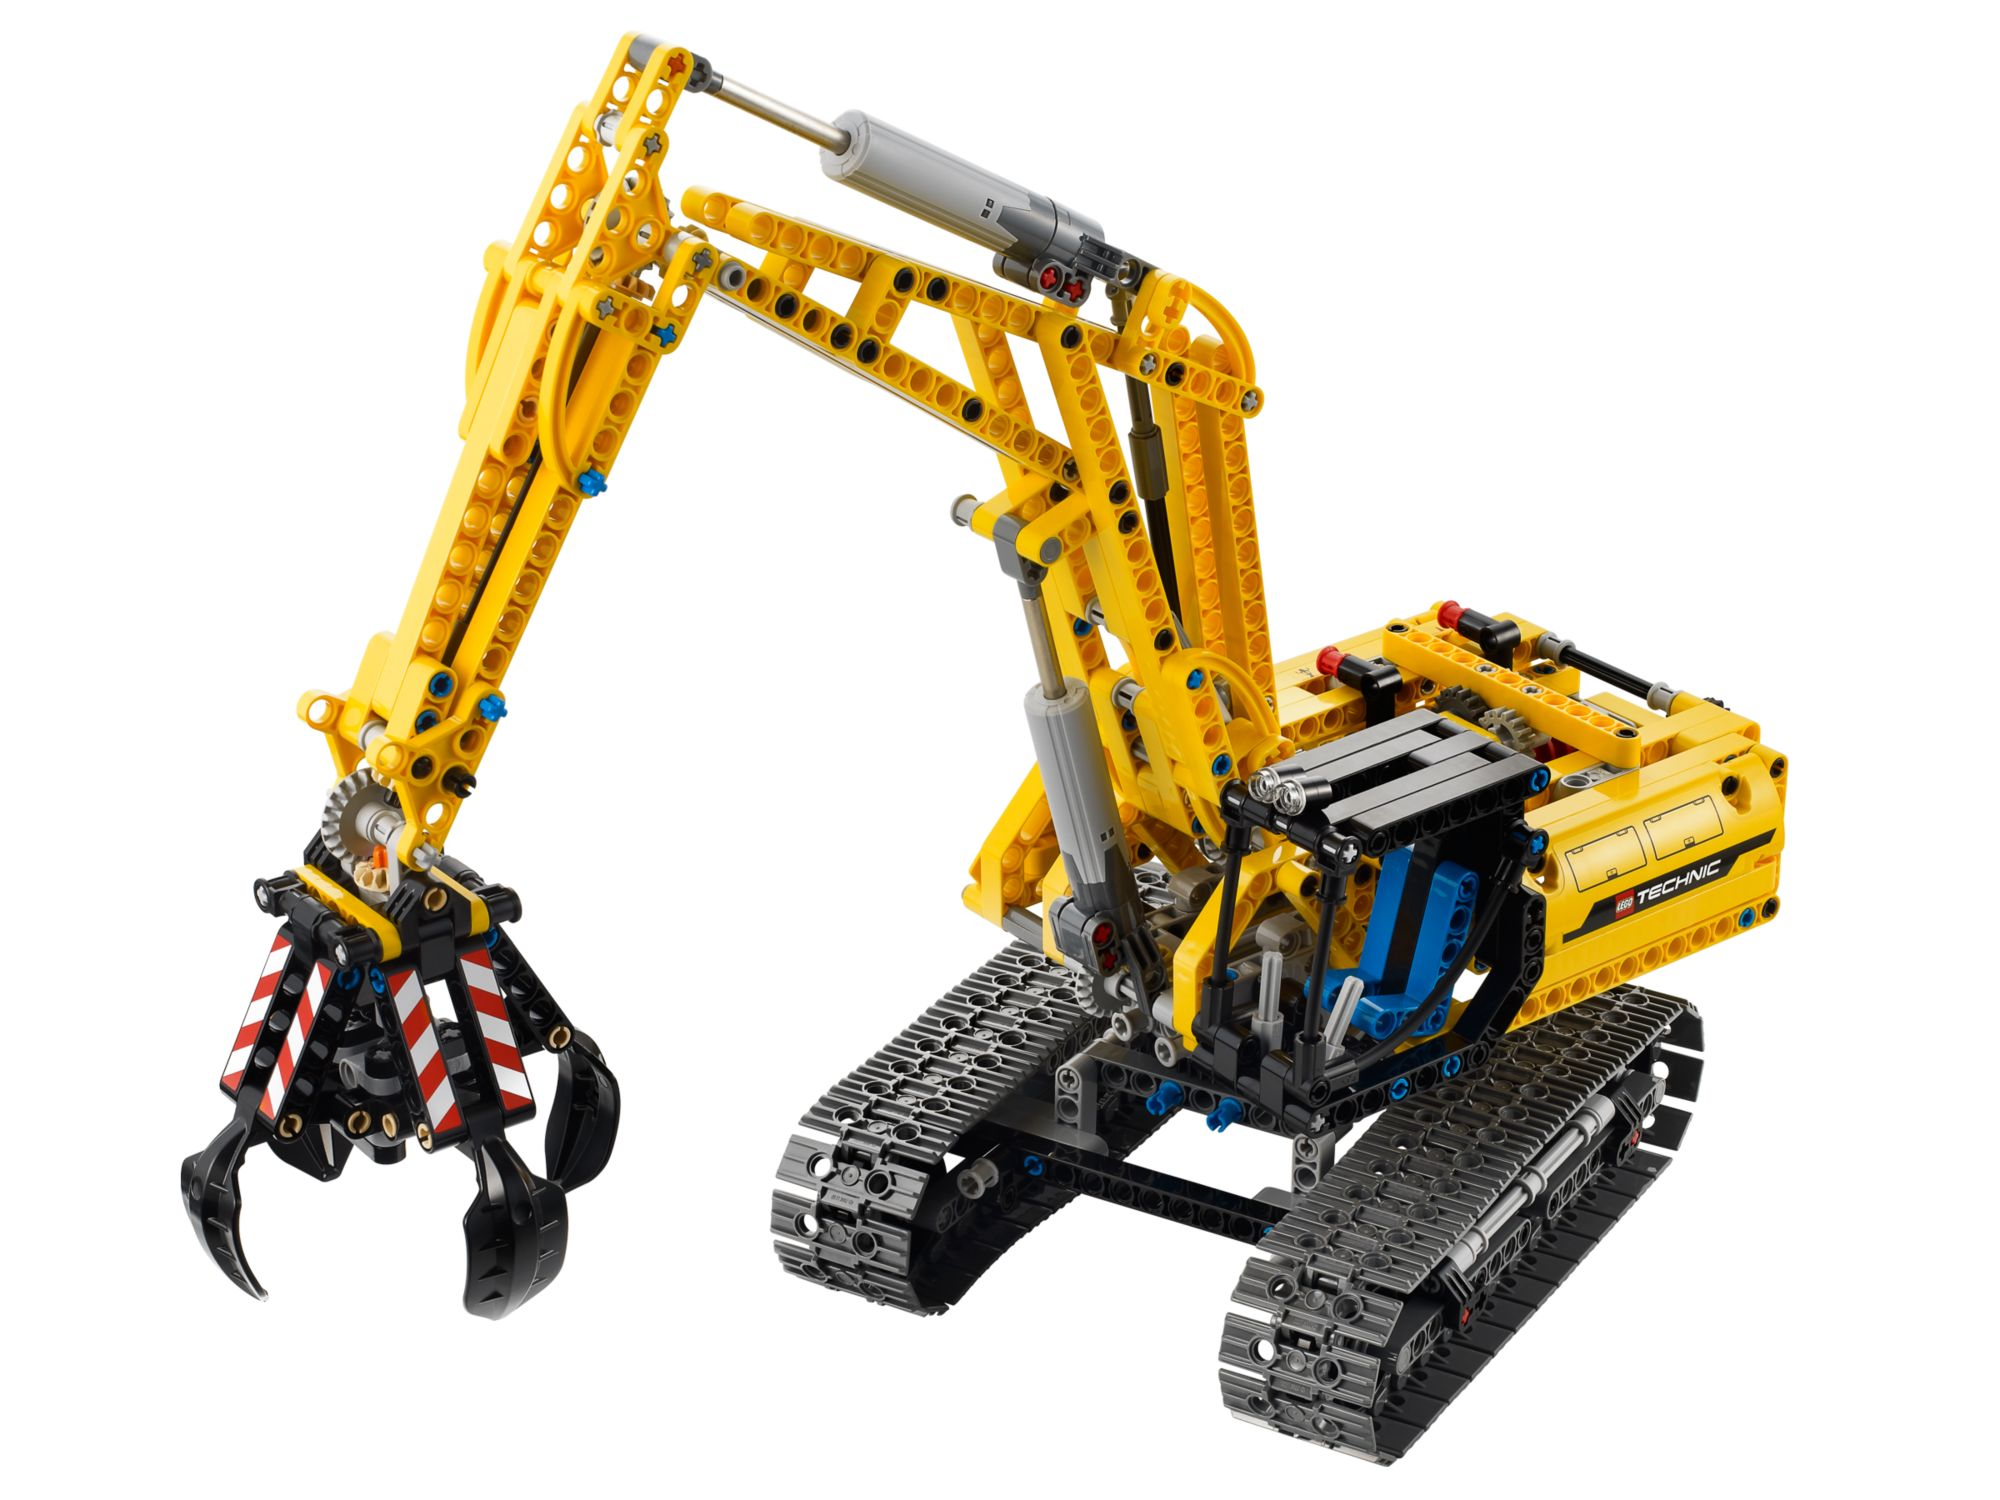 lego 42006 lego technic excavator. Black Bedroom Furniture Sets. Home Design Ideas